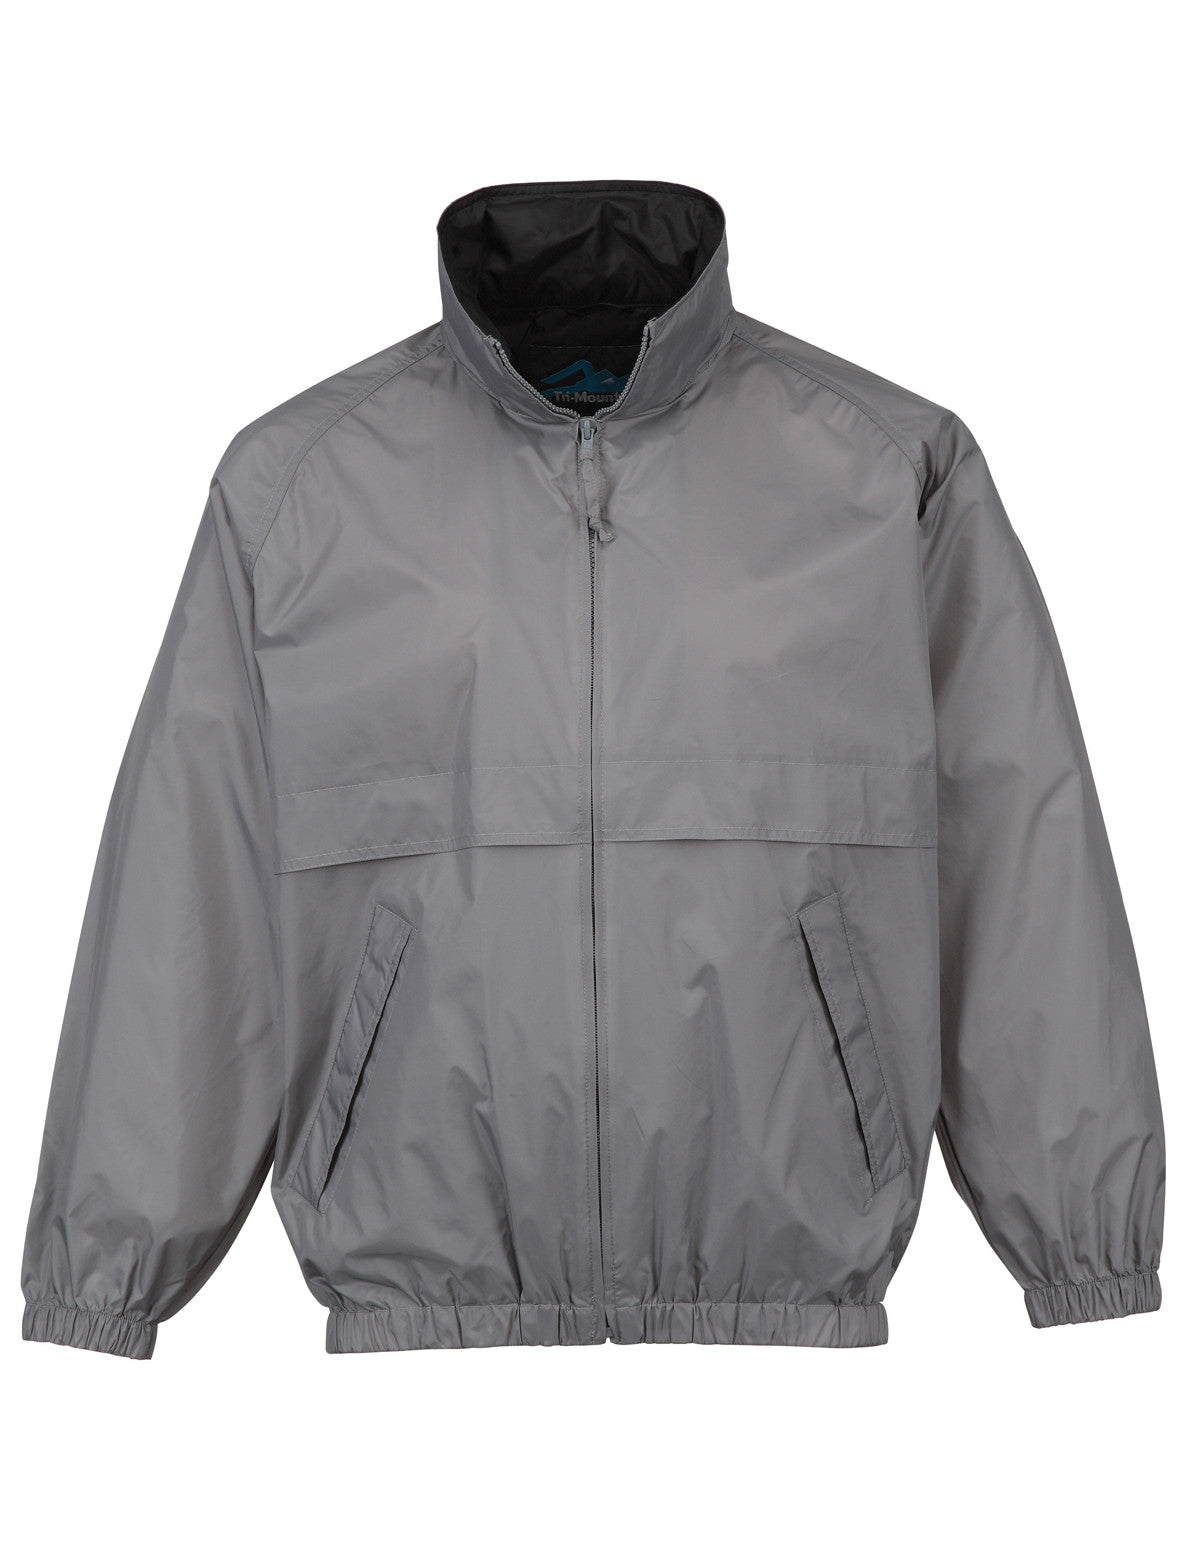 MOUNTAIN GEAR HIGHLAND JACKET FOR BIG OR TALL MEN AT LIL JOHNS BIG AND TALL MENS FASHION